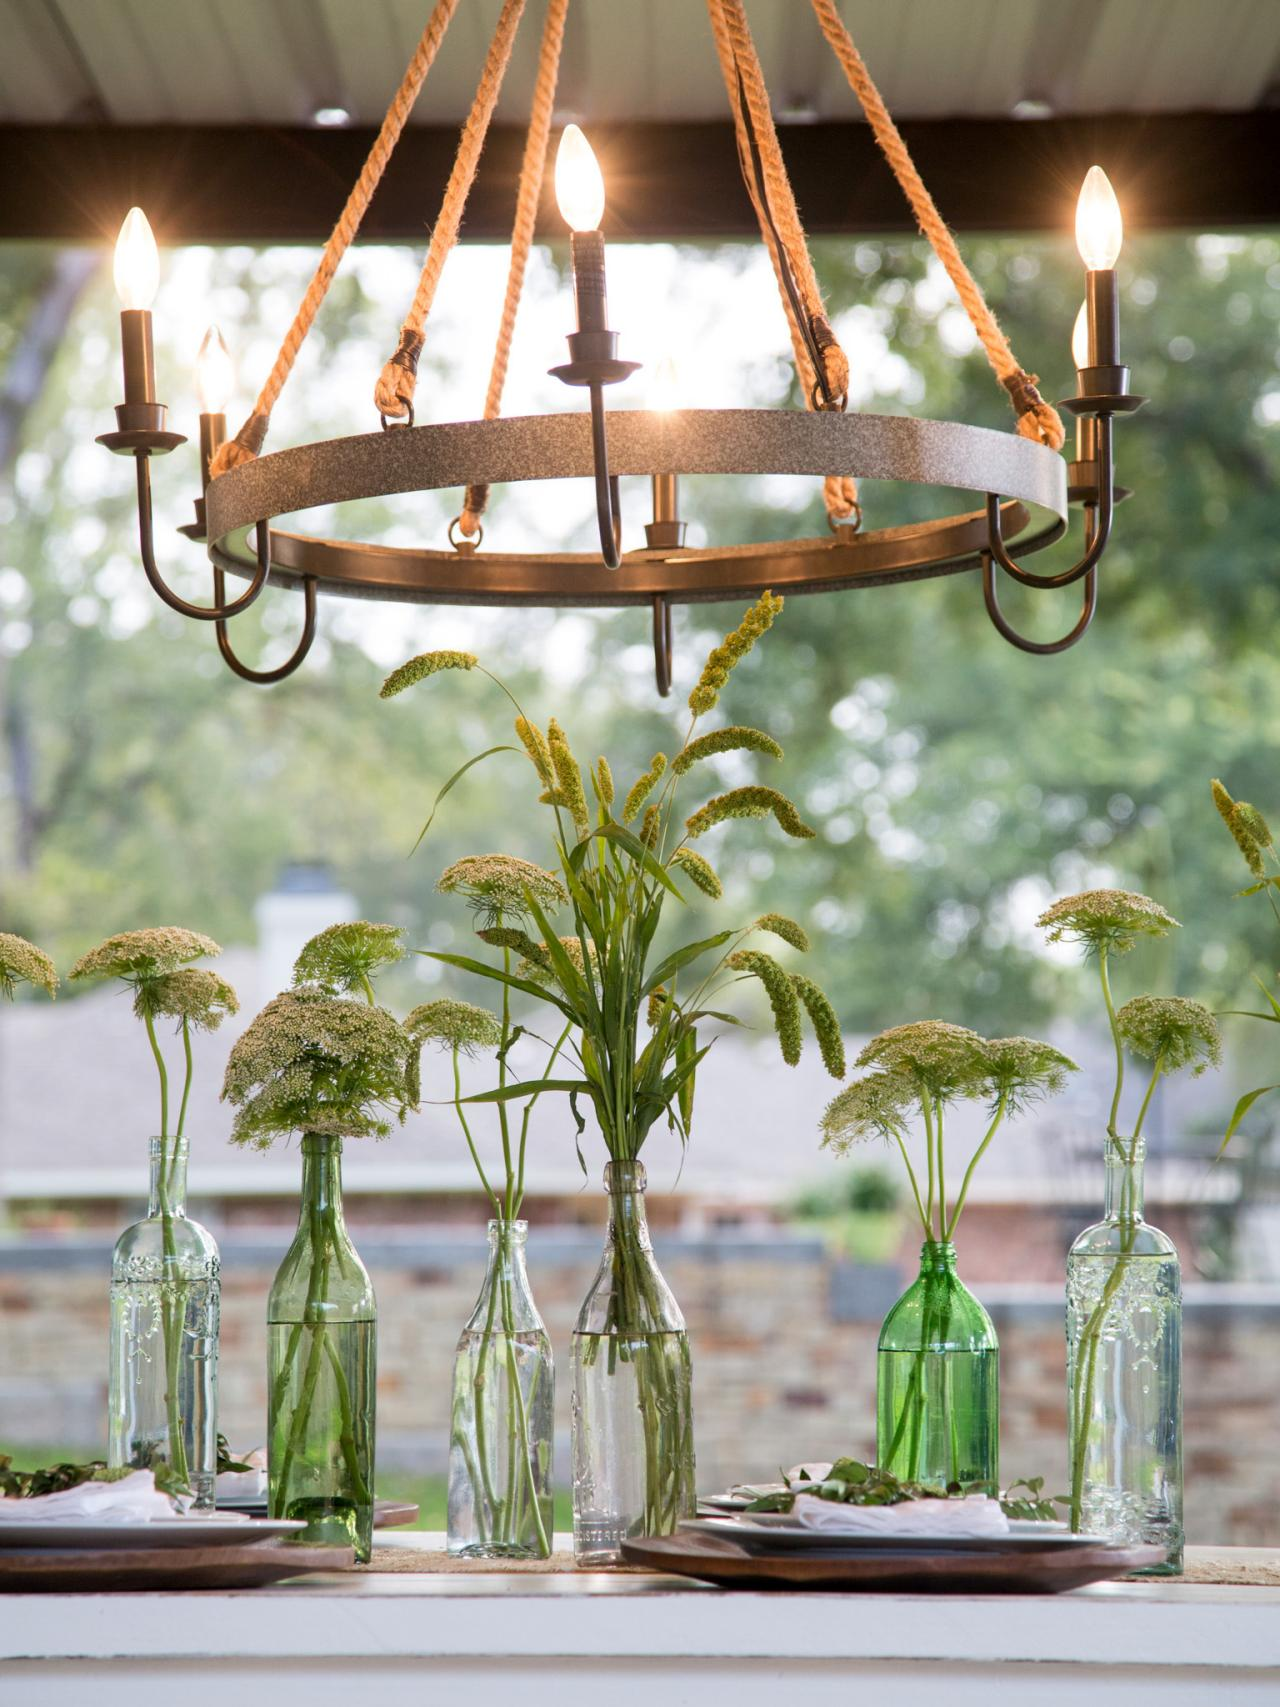 attachment outdoor the pinterest gallery chandelier to solar pertaining outside of best ideas viewing on photos photo